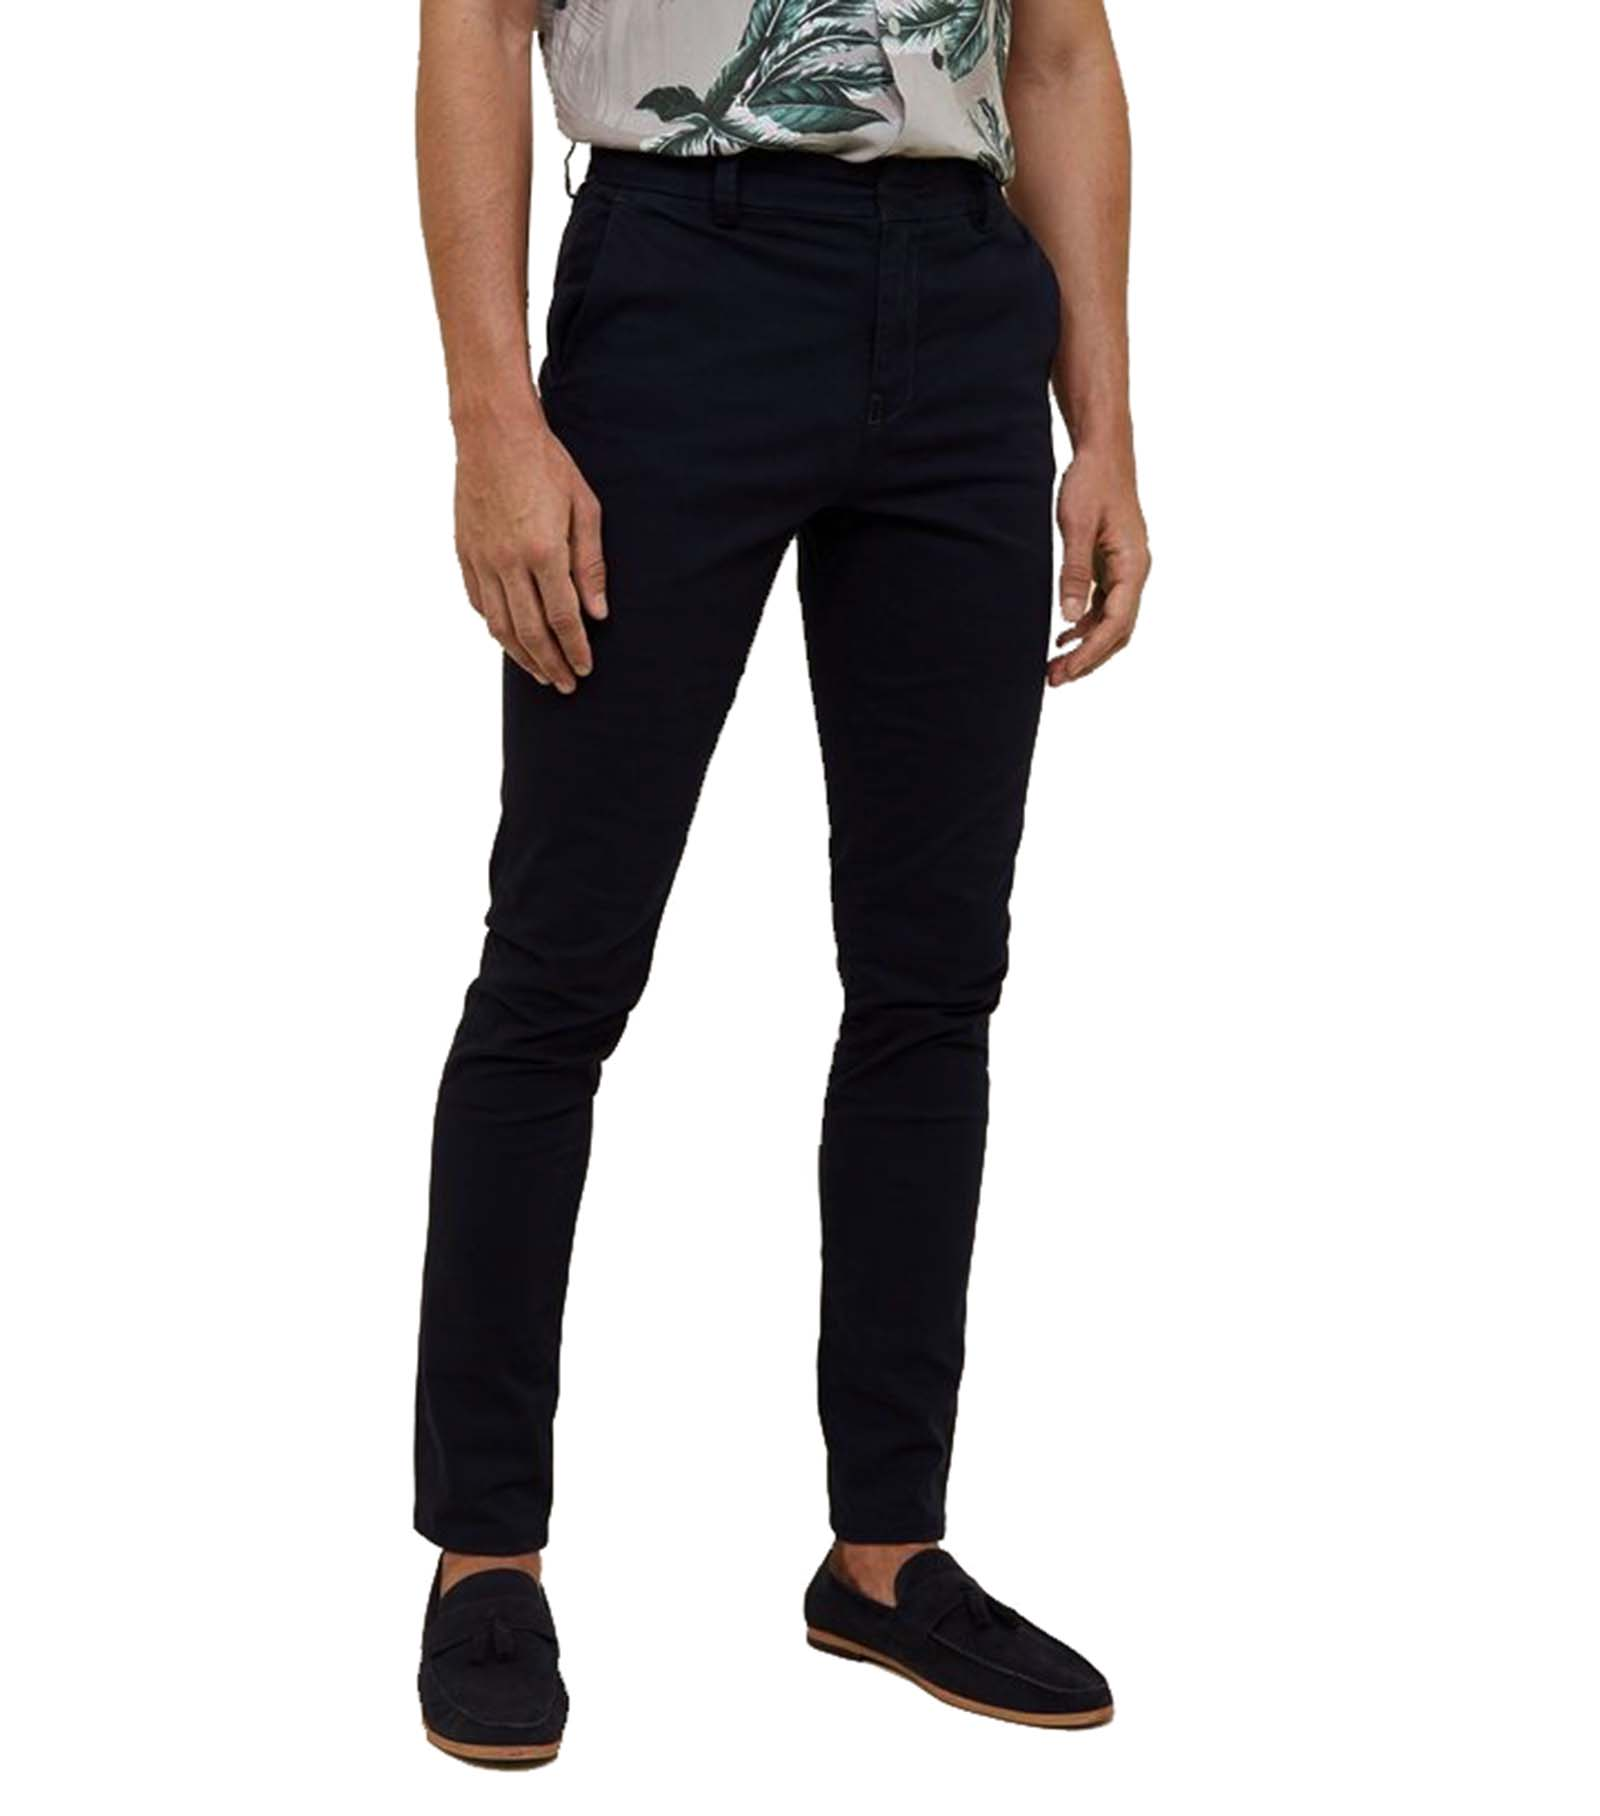 239e544aae Sentinel MENS BLACK SKINNY FIT CHINOS LONG PANTS SMART CASUAL WORK TROUSERS  - ALL SIZES